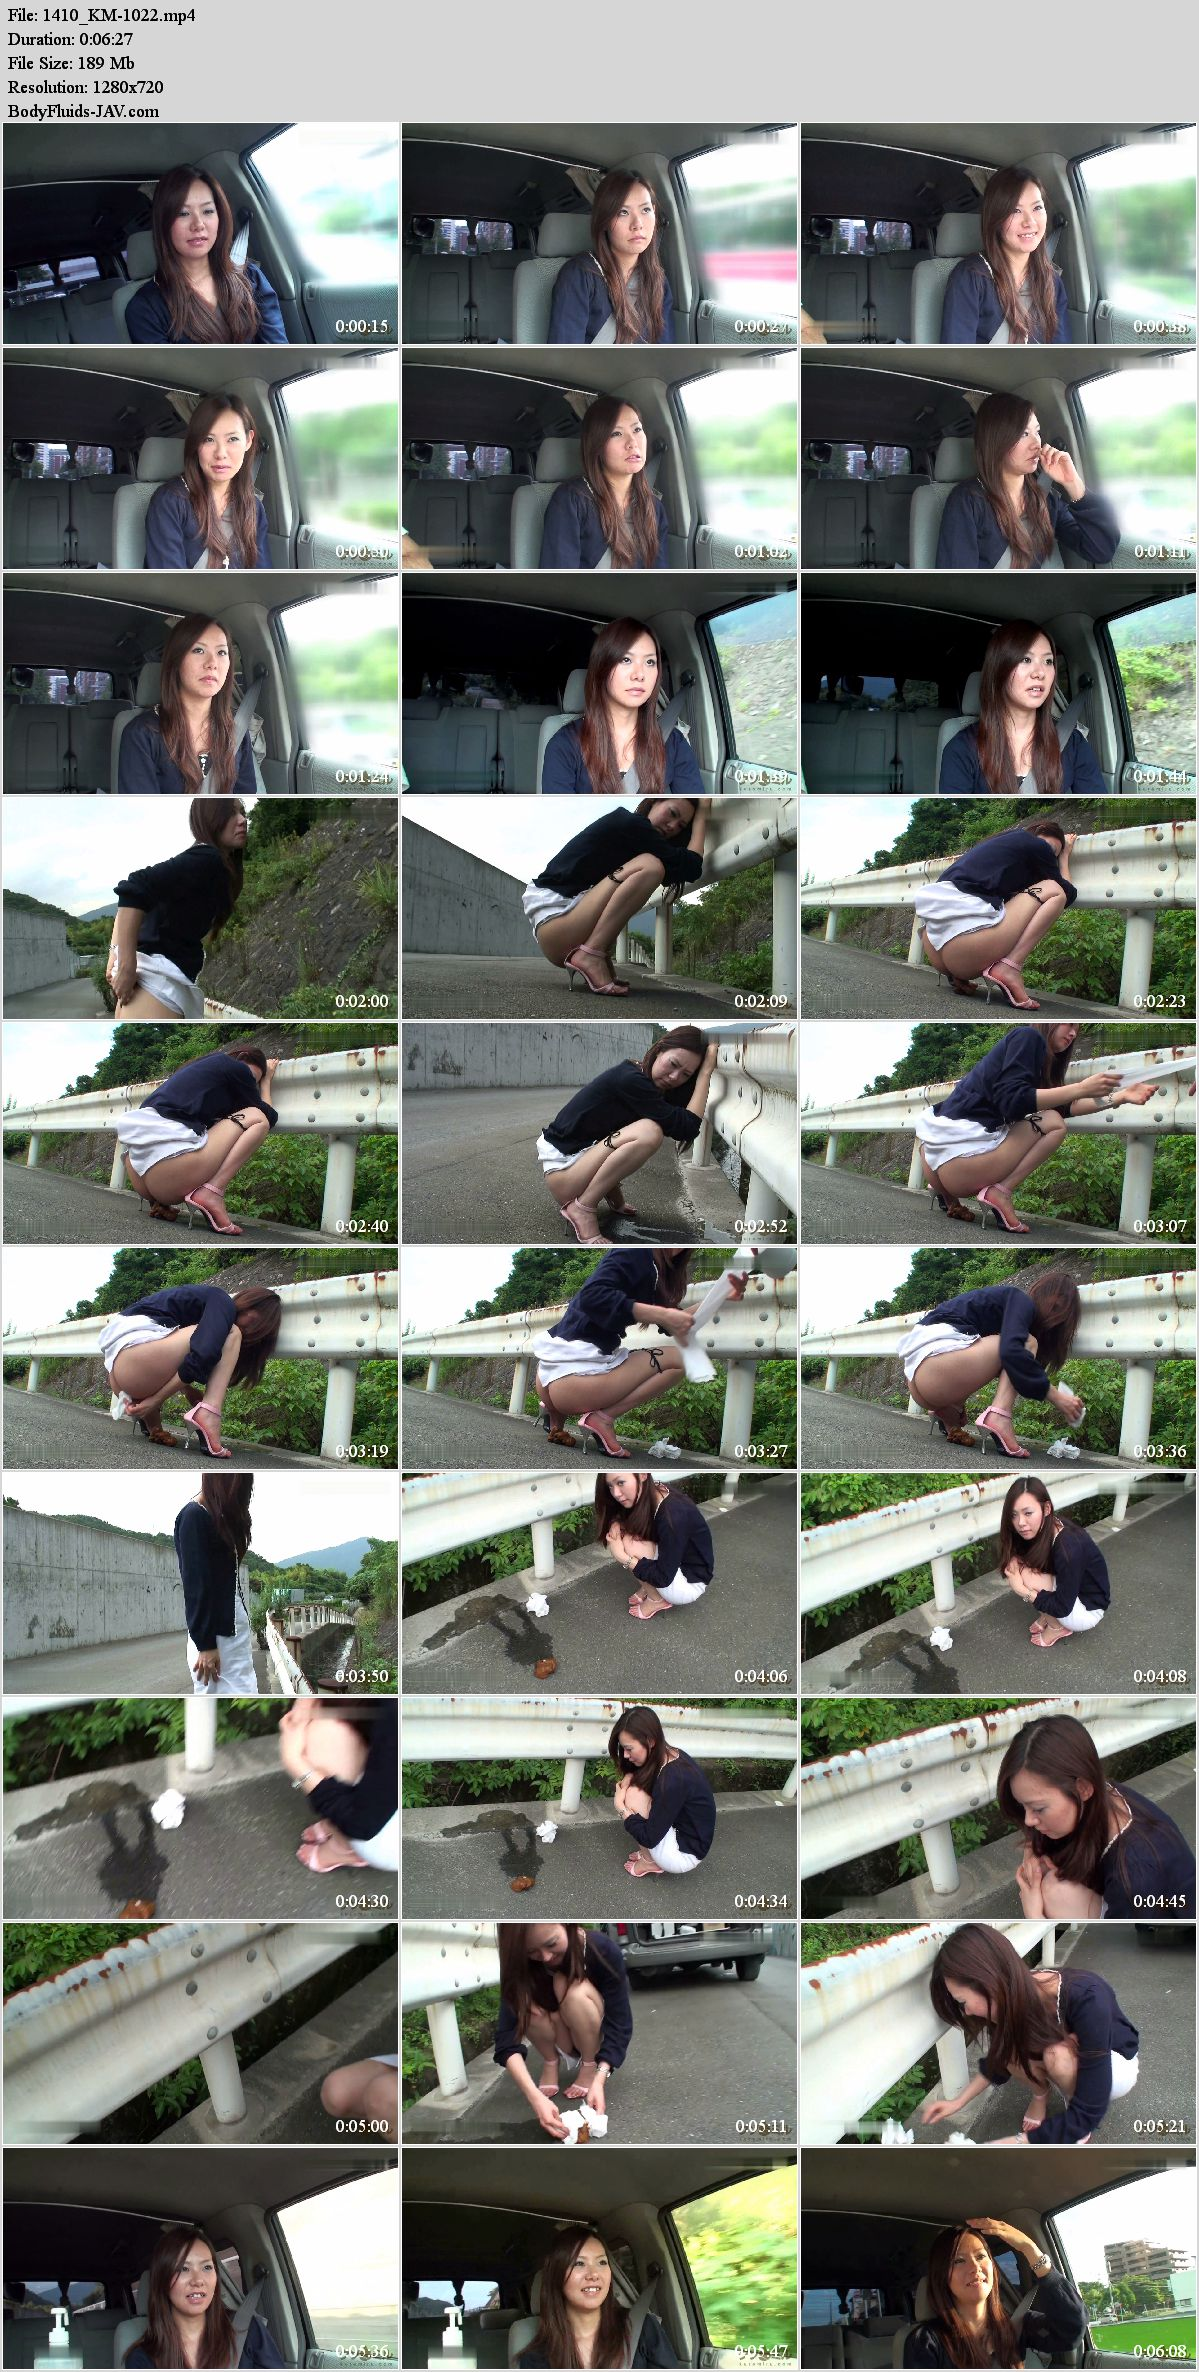 KM-1022 Field feces Fukasawa Anna amateur poop. (HD 720p)